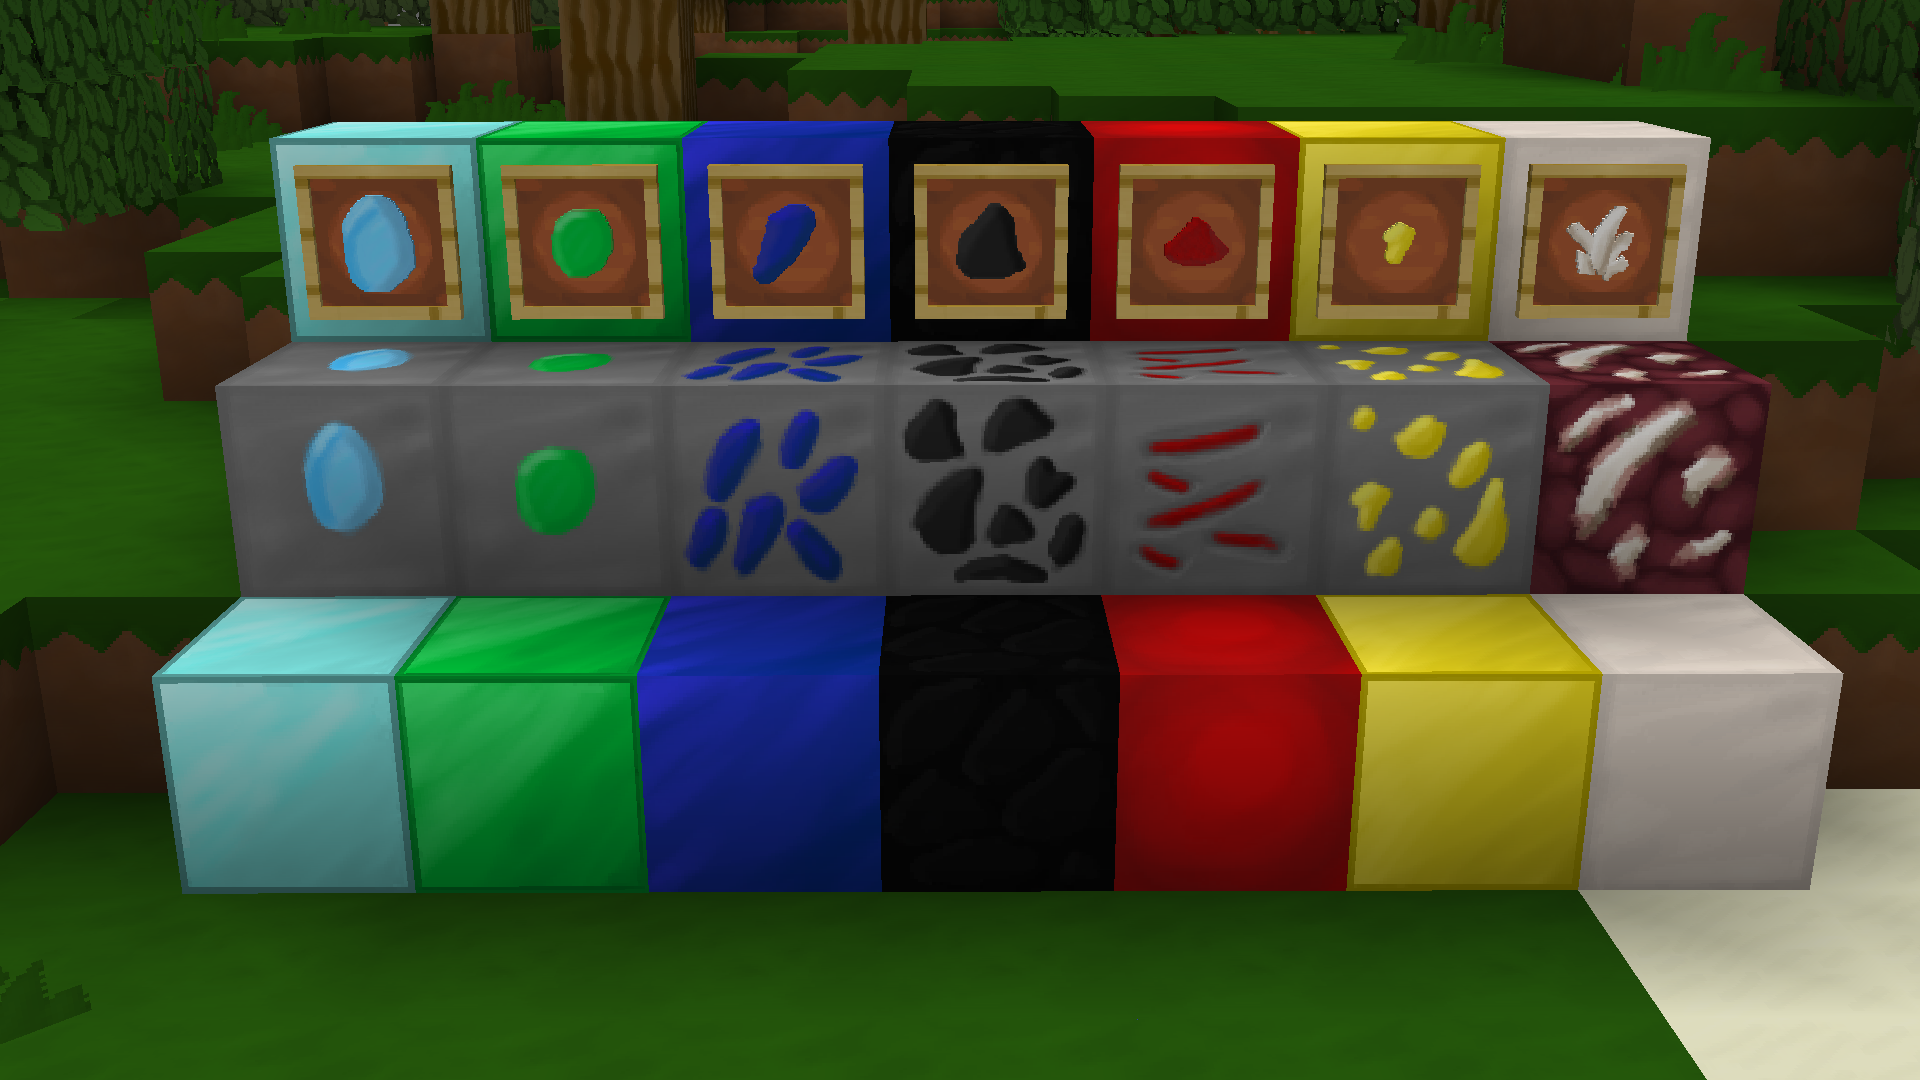 Ores, Blocks, and Items